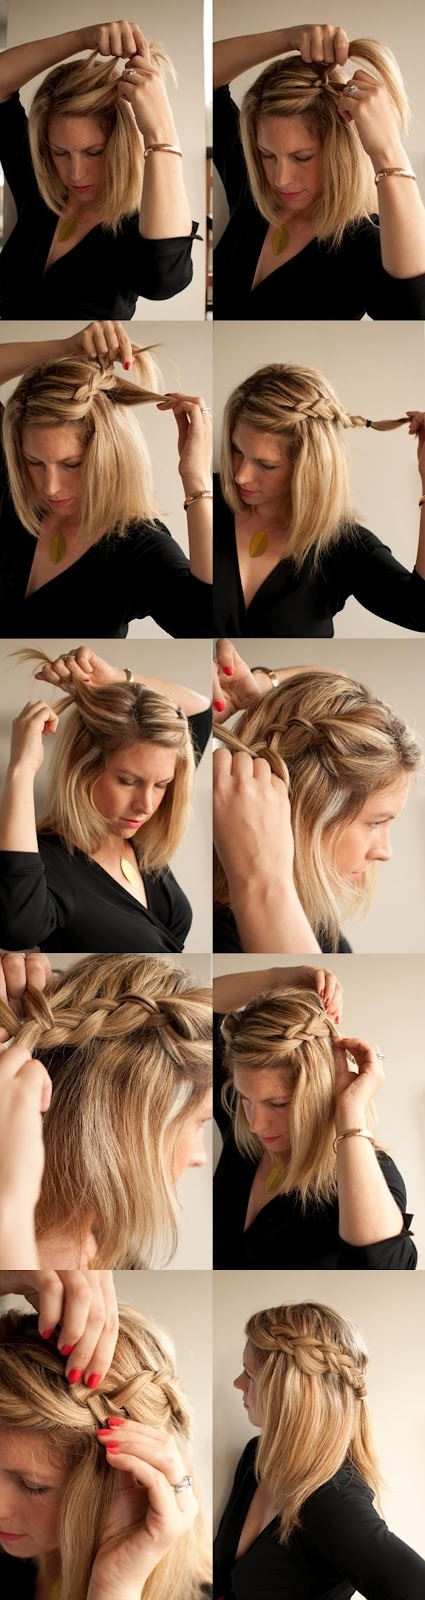 DIY Summer Side Braid Hairstyle via